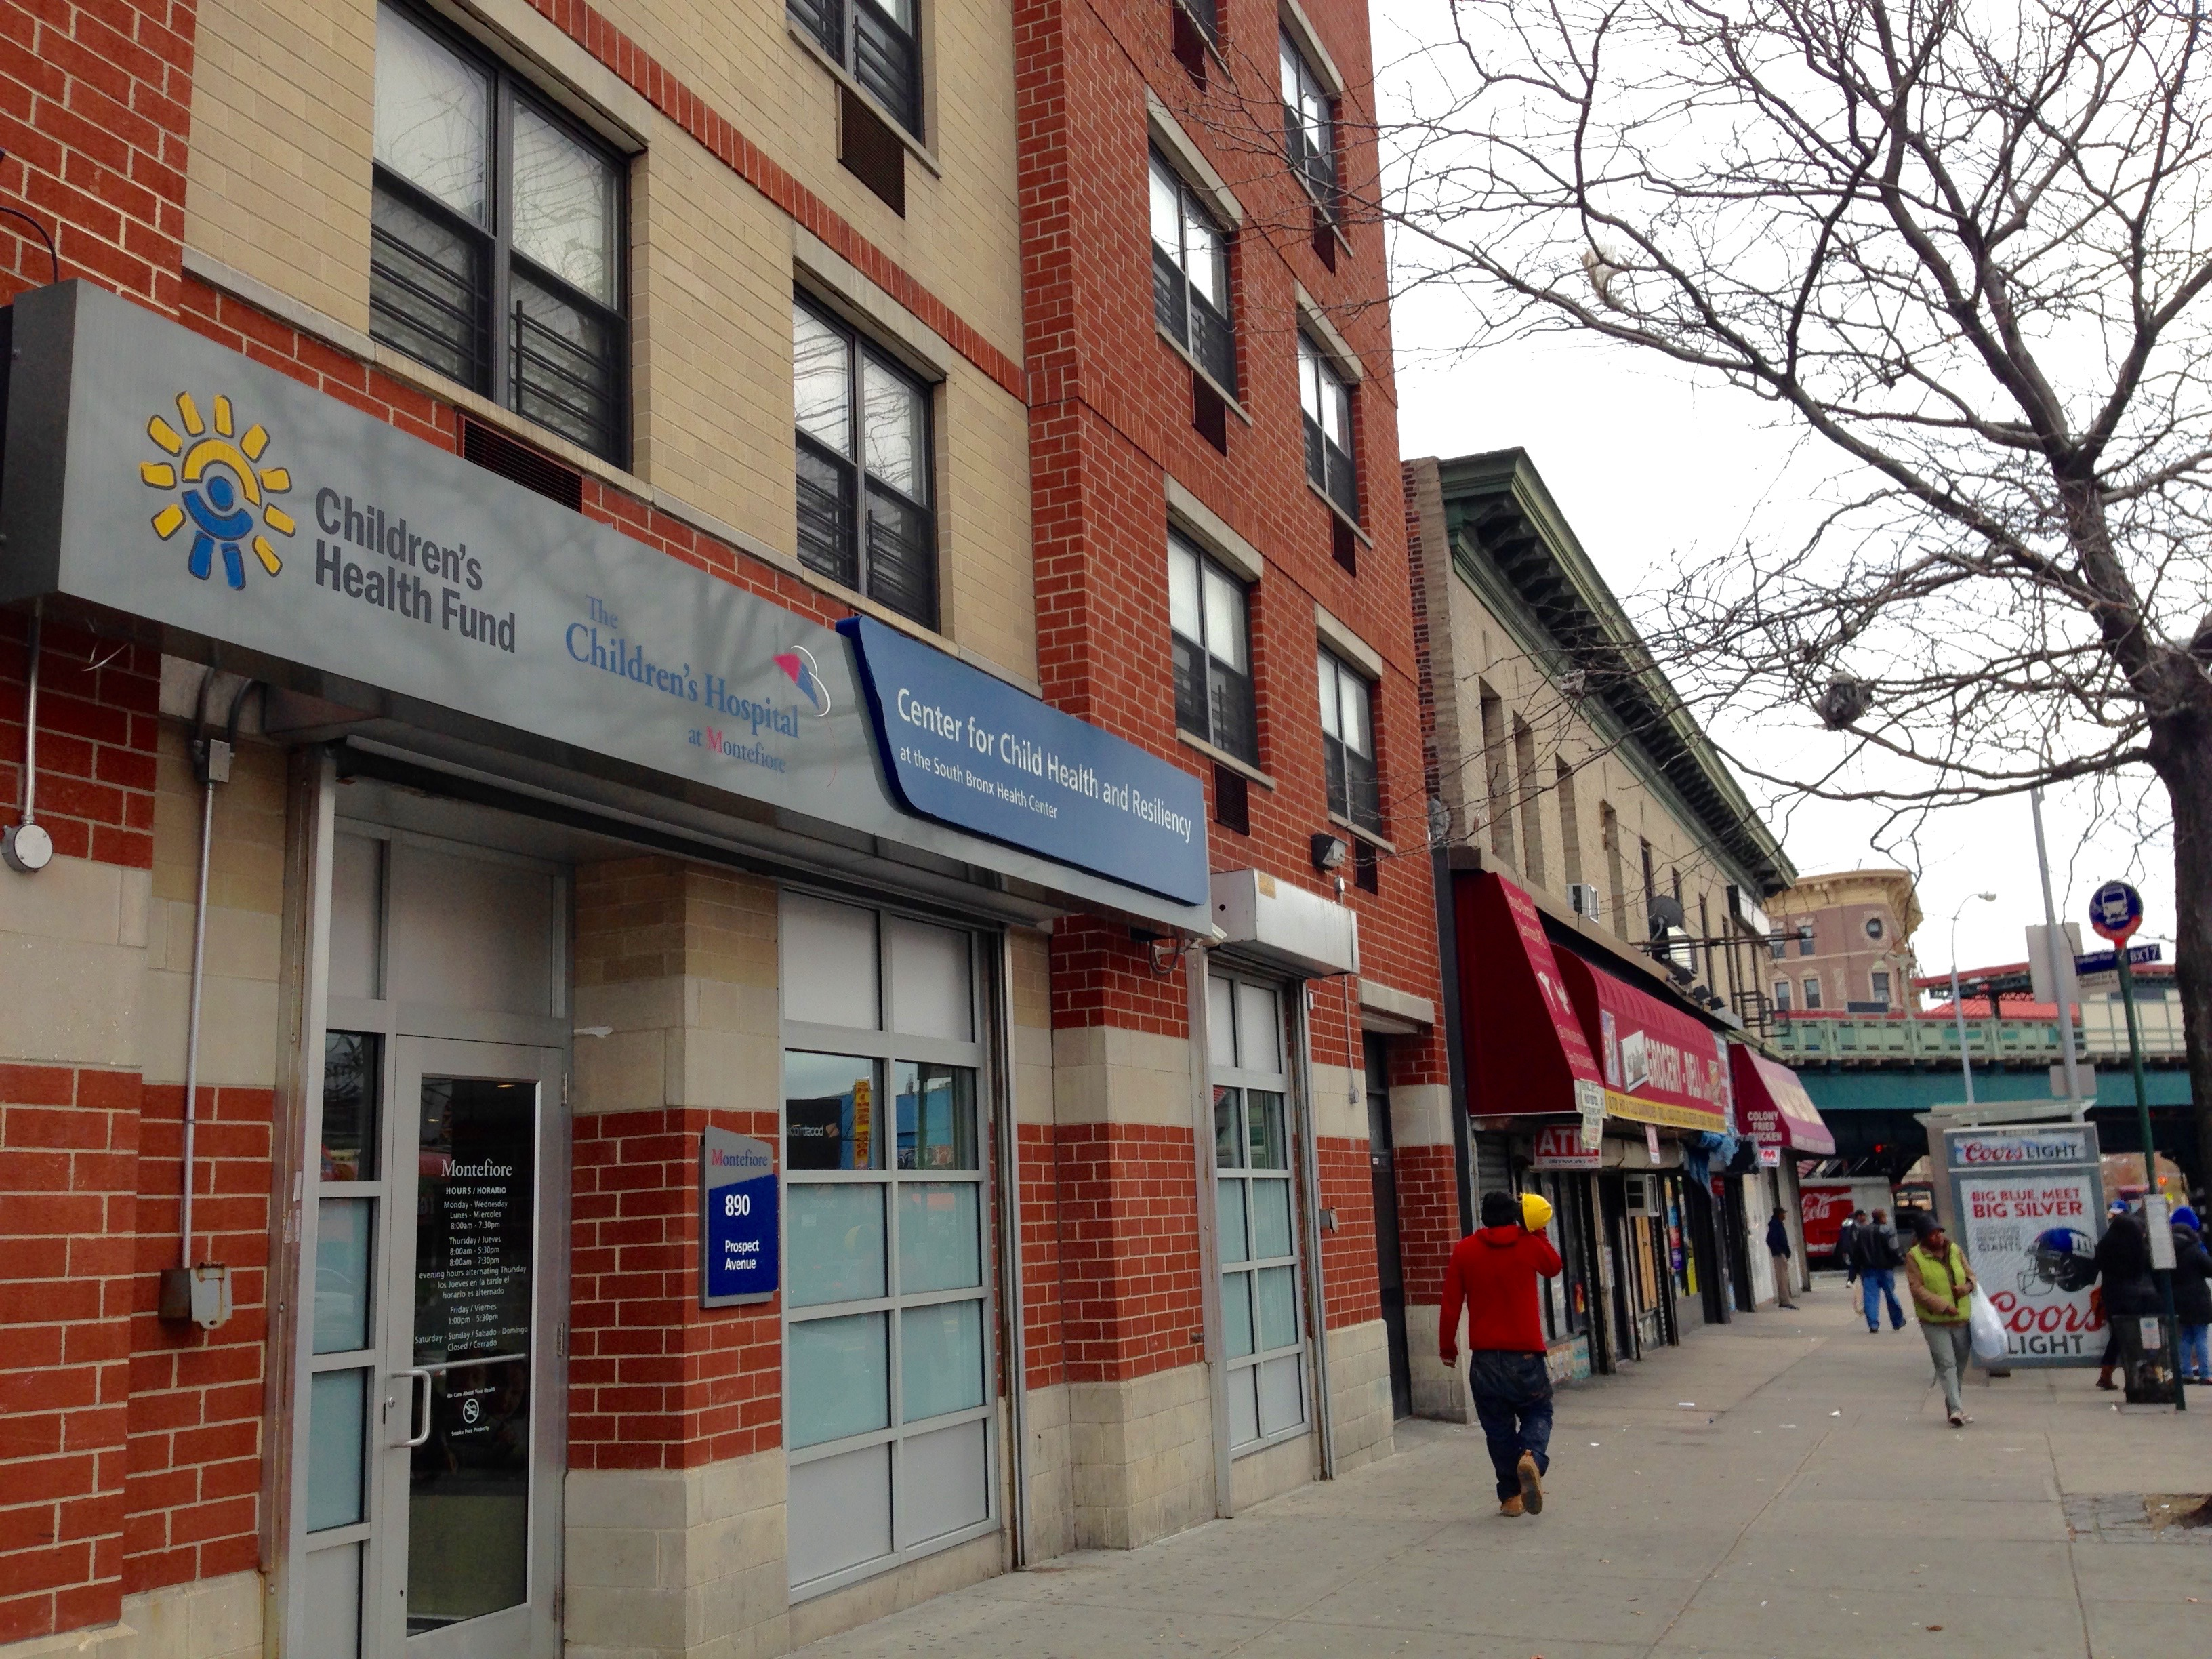 Outside of the Bronx offices of Terra Firma, a medical-legal partnership focused on immigrant youth in New York (Image: Katie Schlechter)